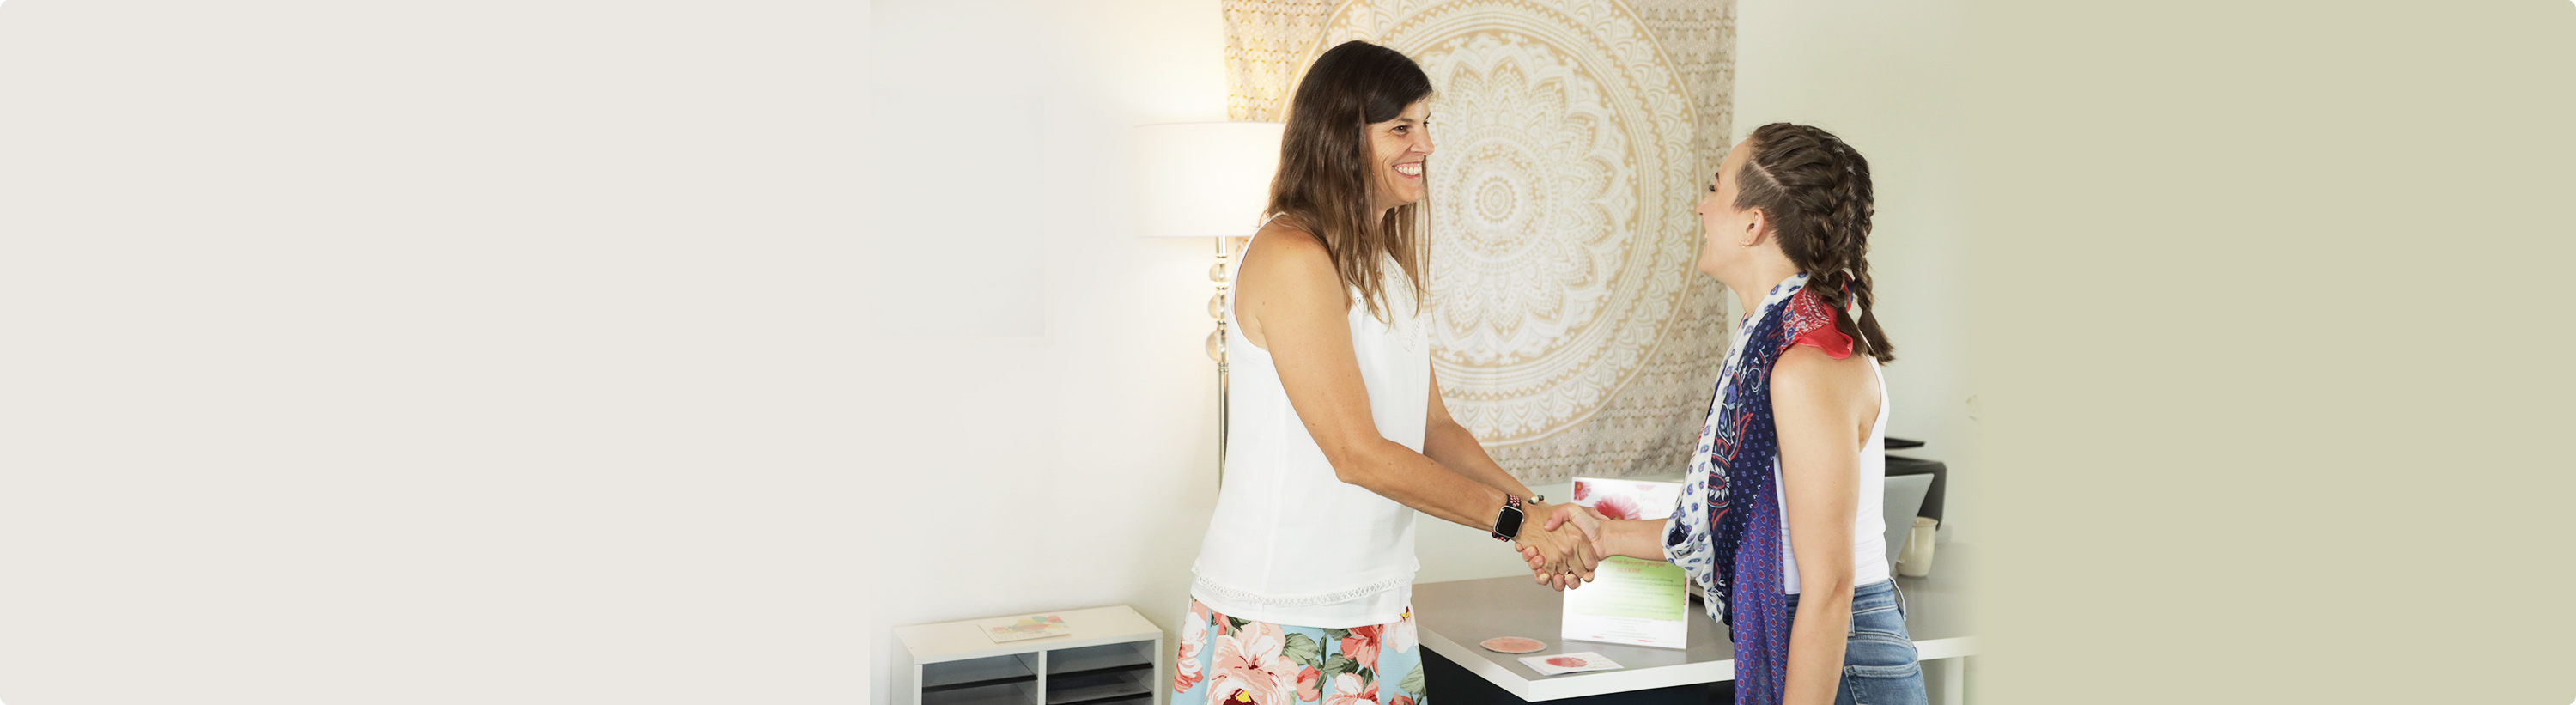 Dr. Stephanie shaking hands with patient